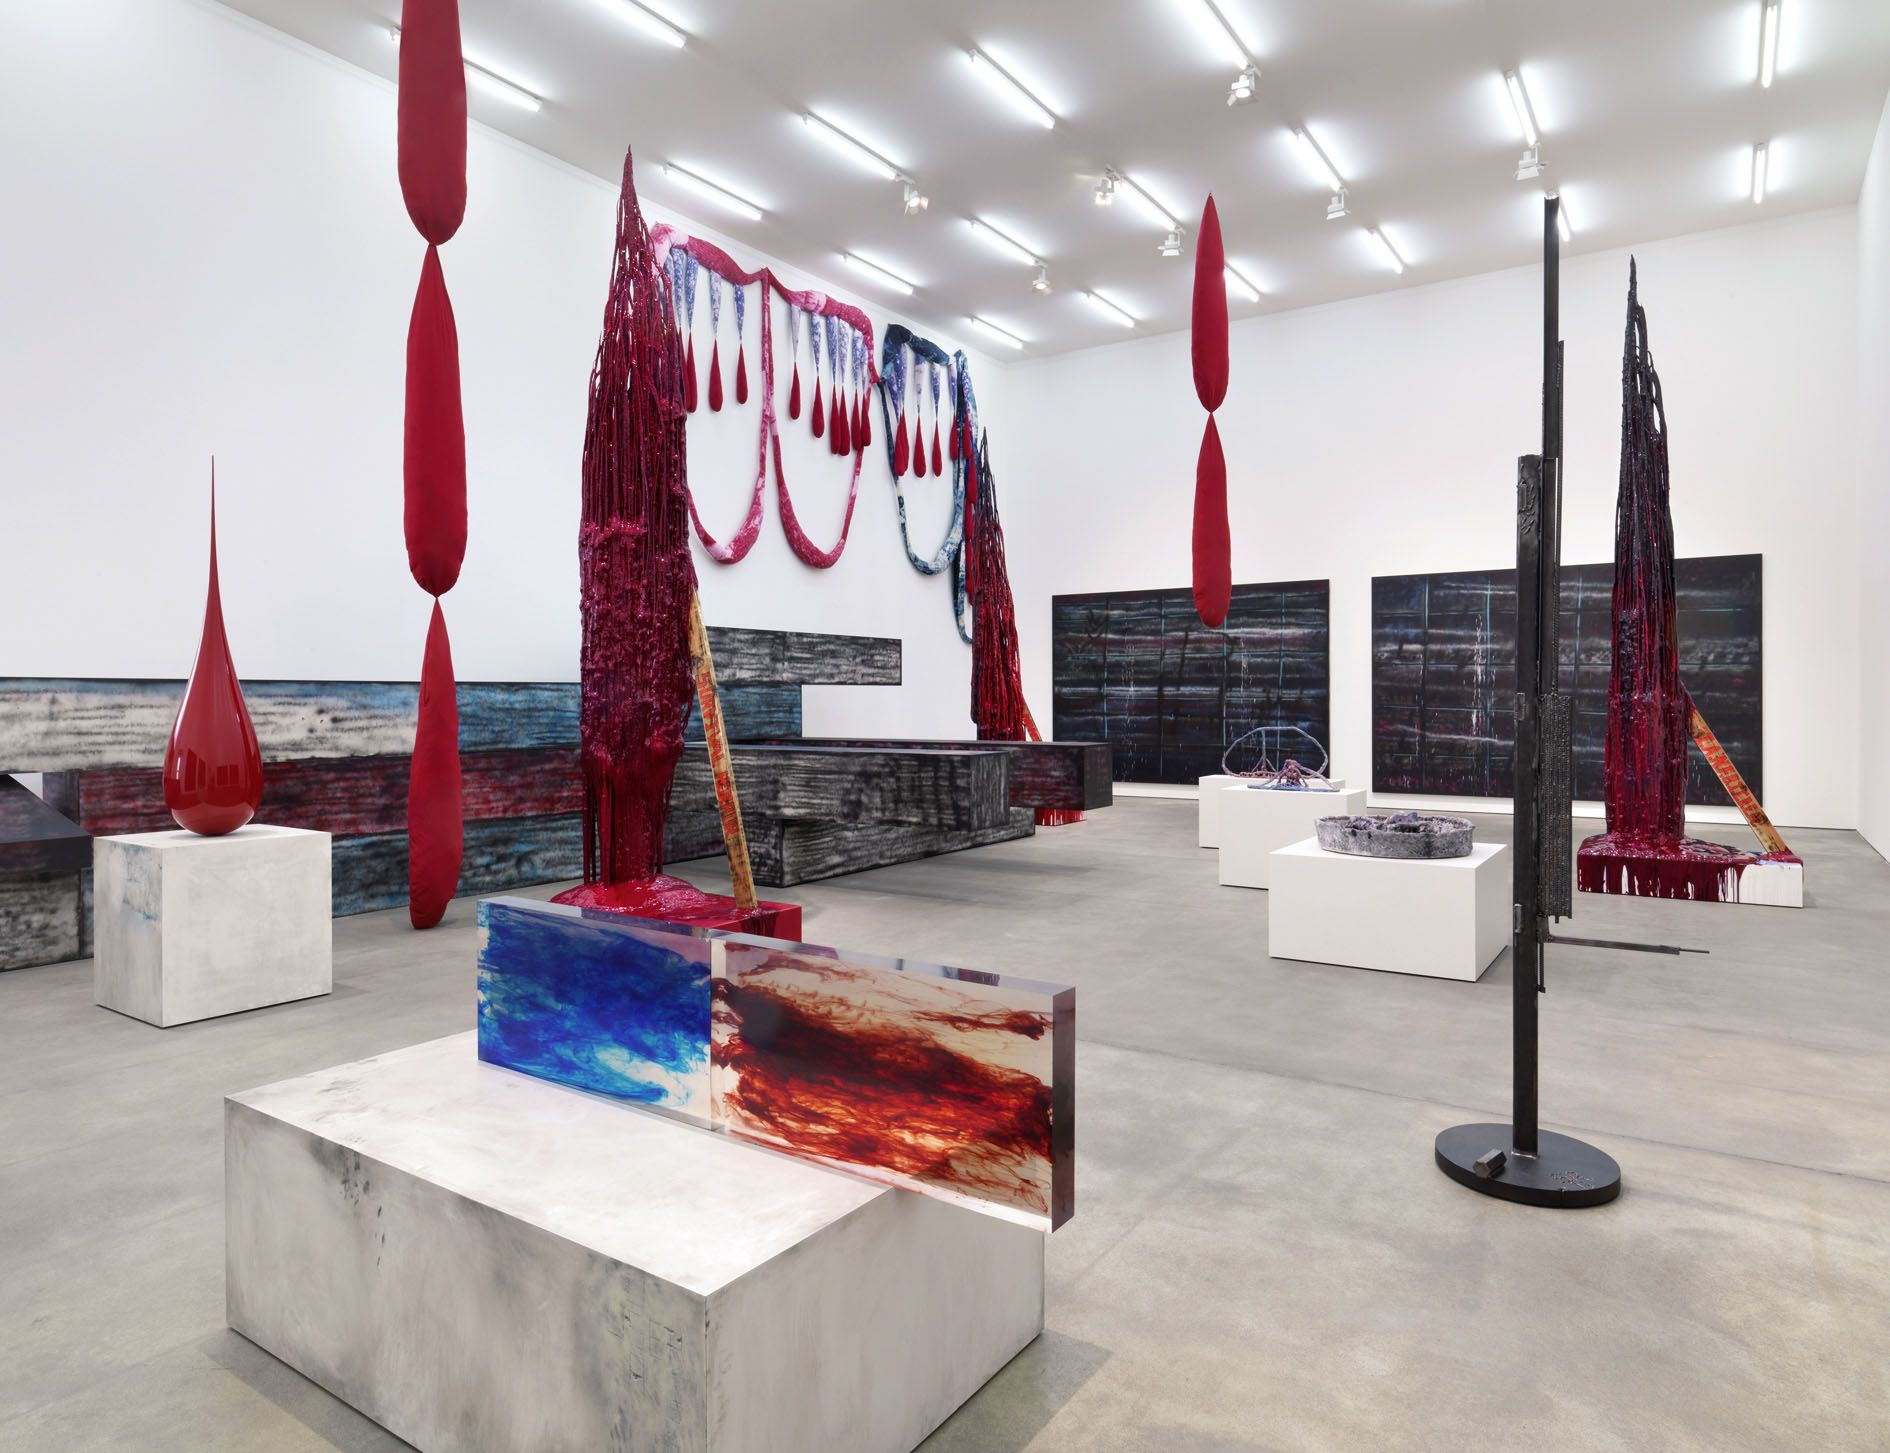 Sterling Ruby – I AM NOT FREE BECAUSE I CAN BE EXPLODED ANYTIME – Berlin